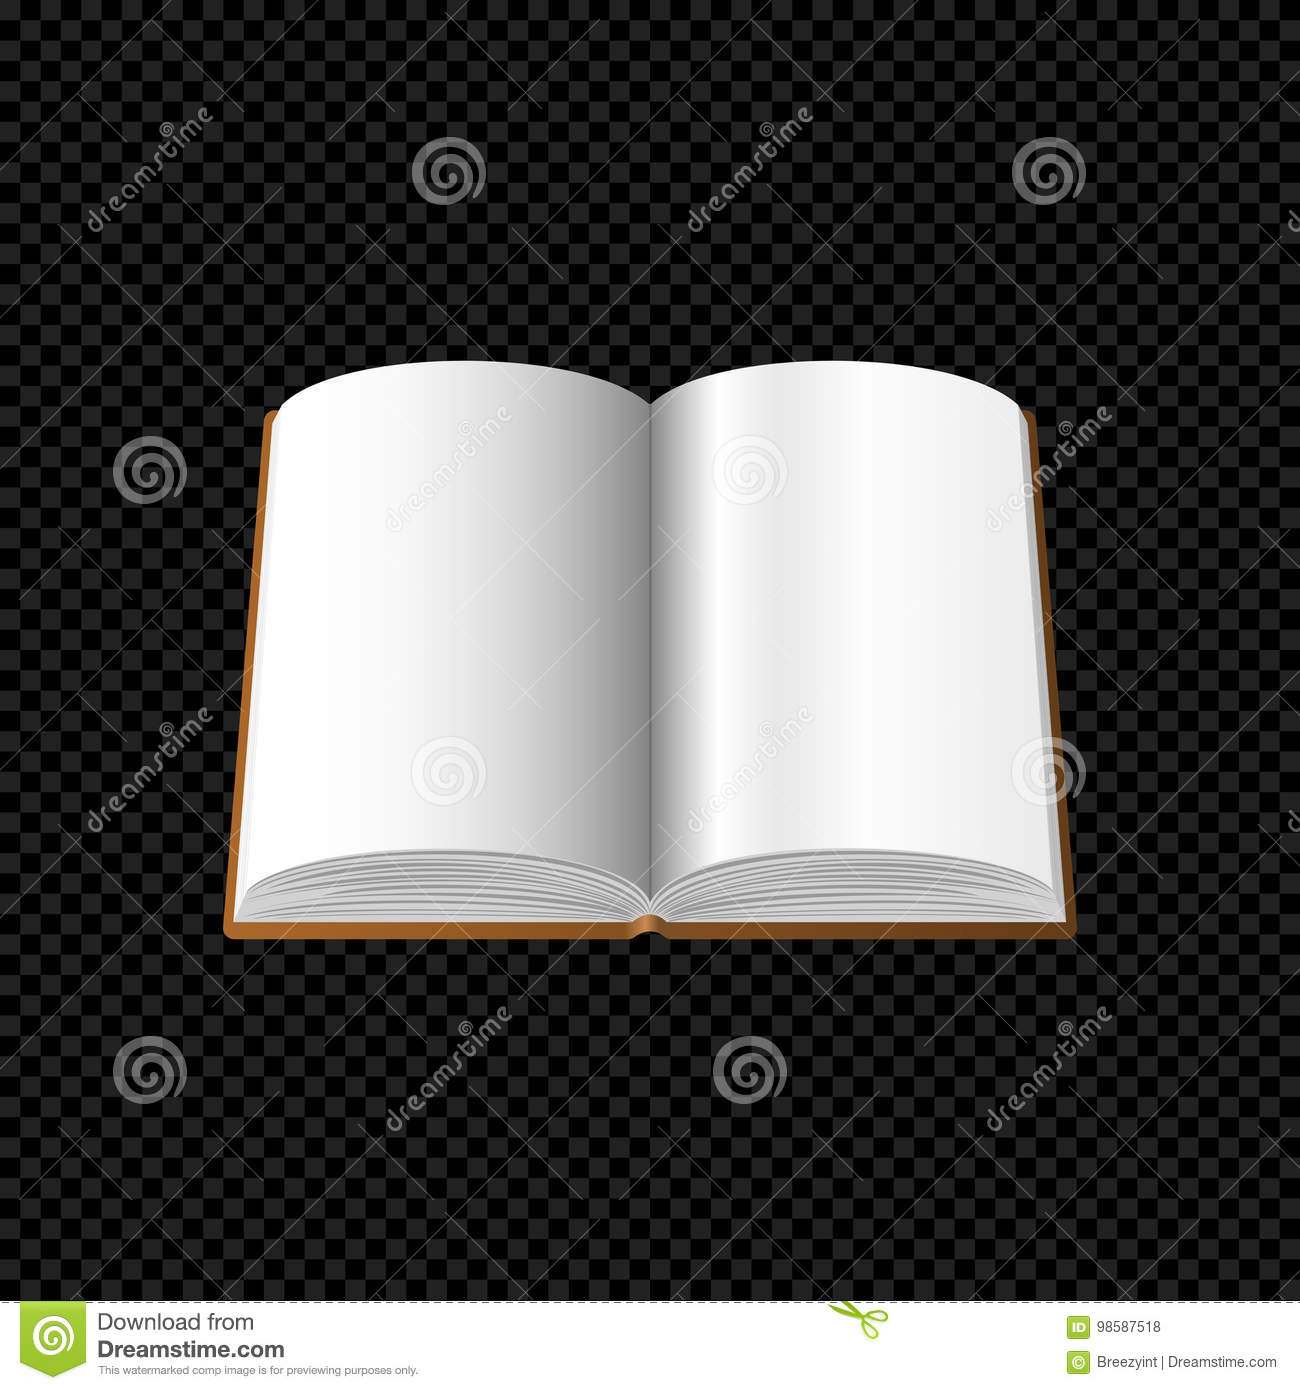 Open Book With Blank Pages Isolated On Transparent Background Stock